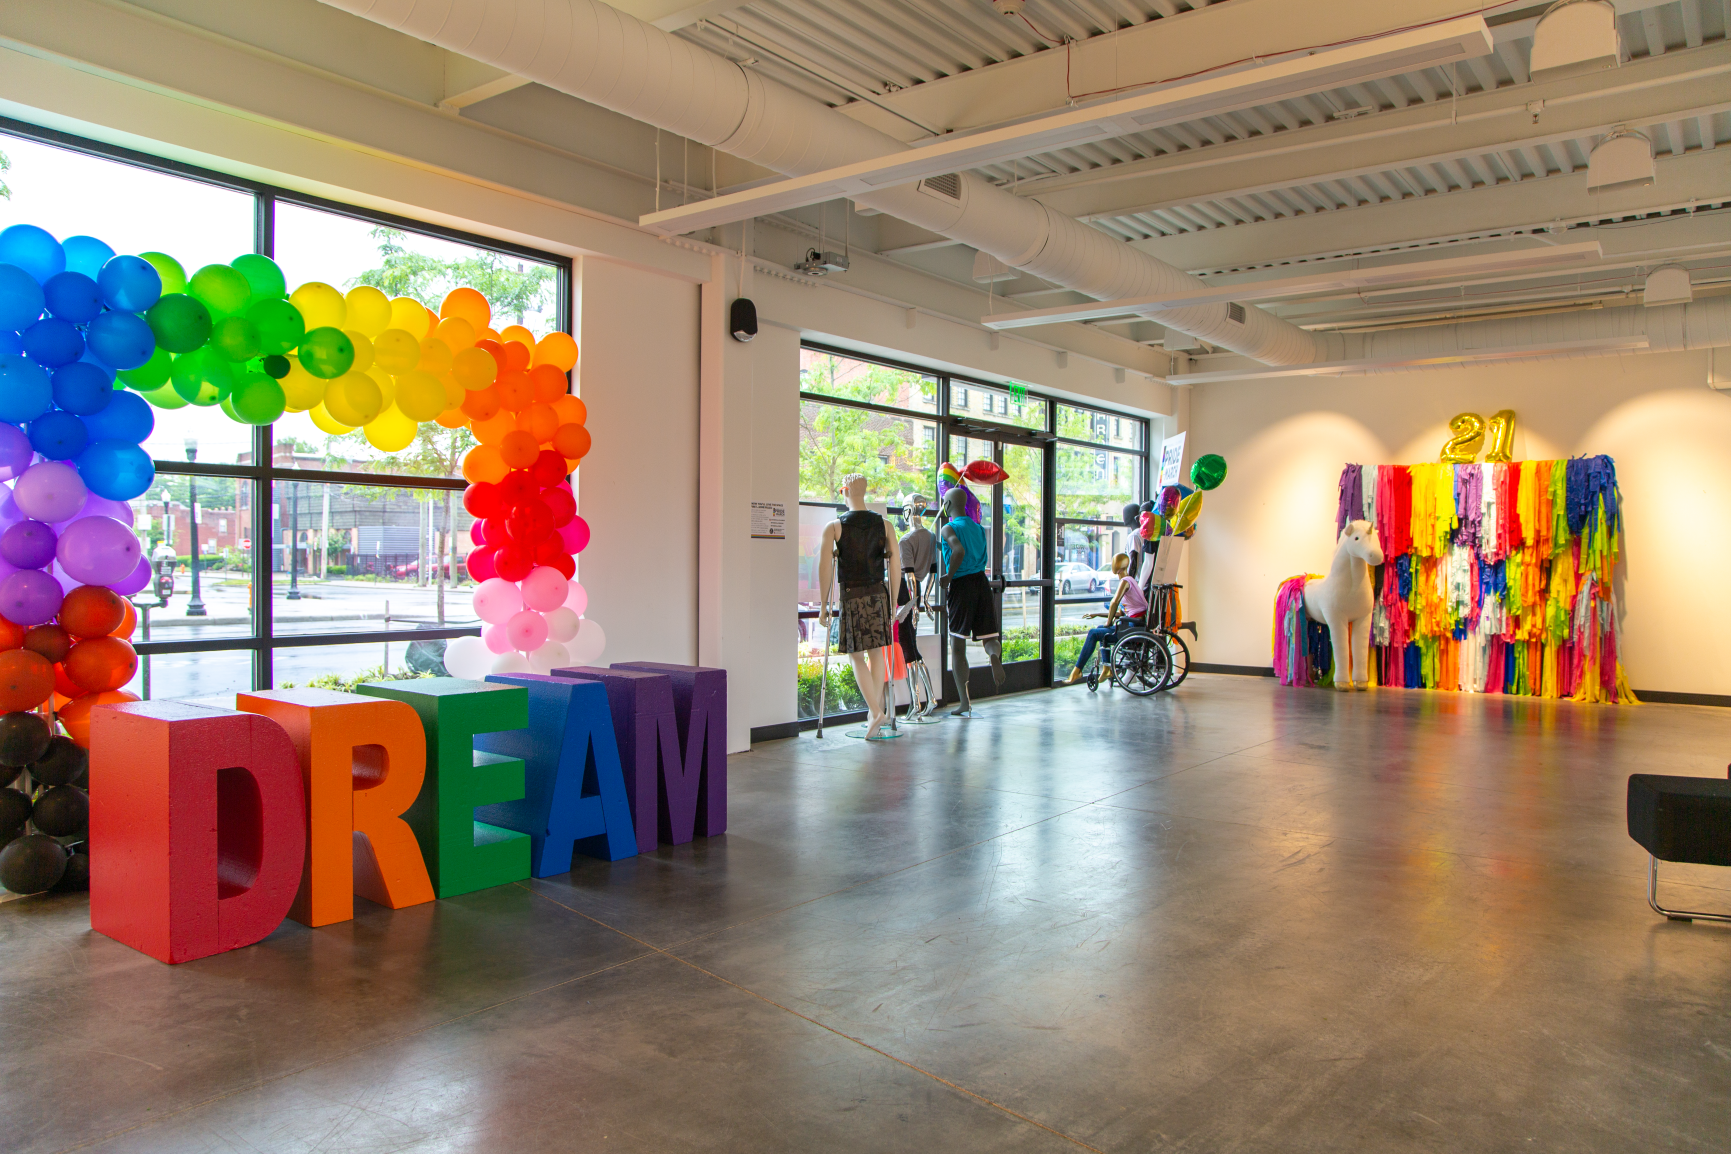 This large open space serves as a great place for photos with a fun background at Stonewall Columbus Community Center by Continental Office Branding